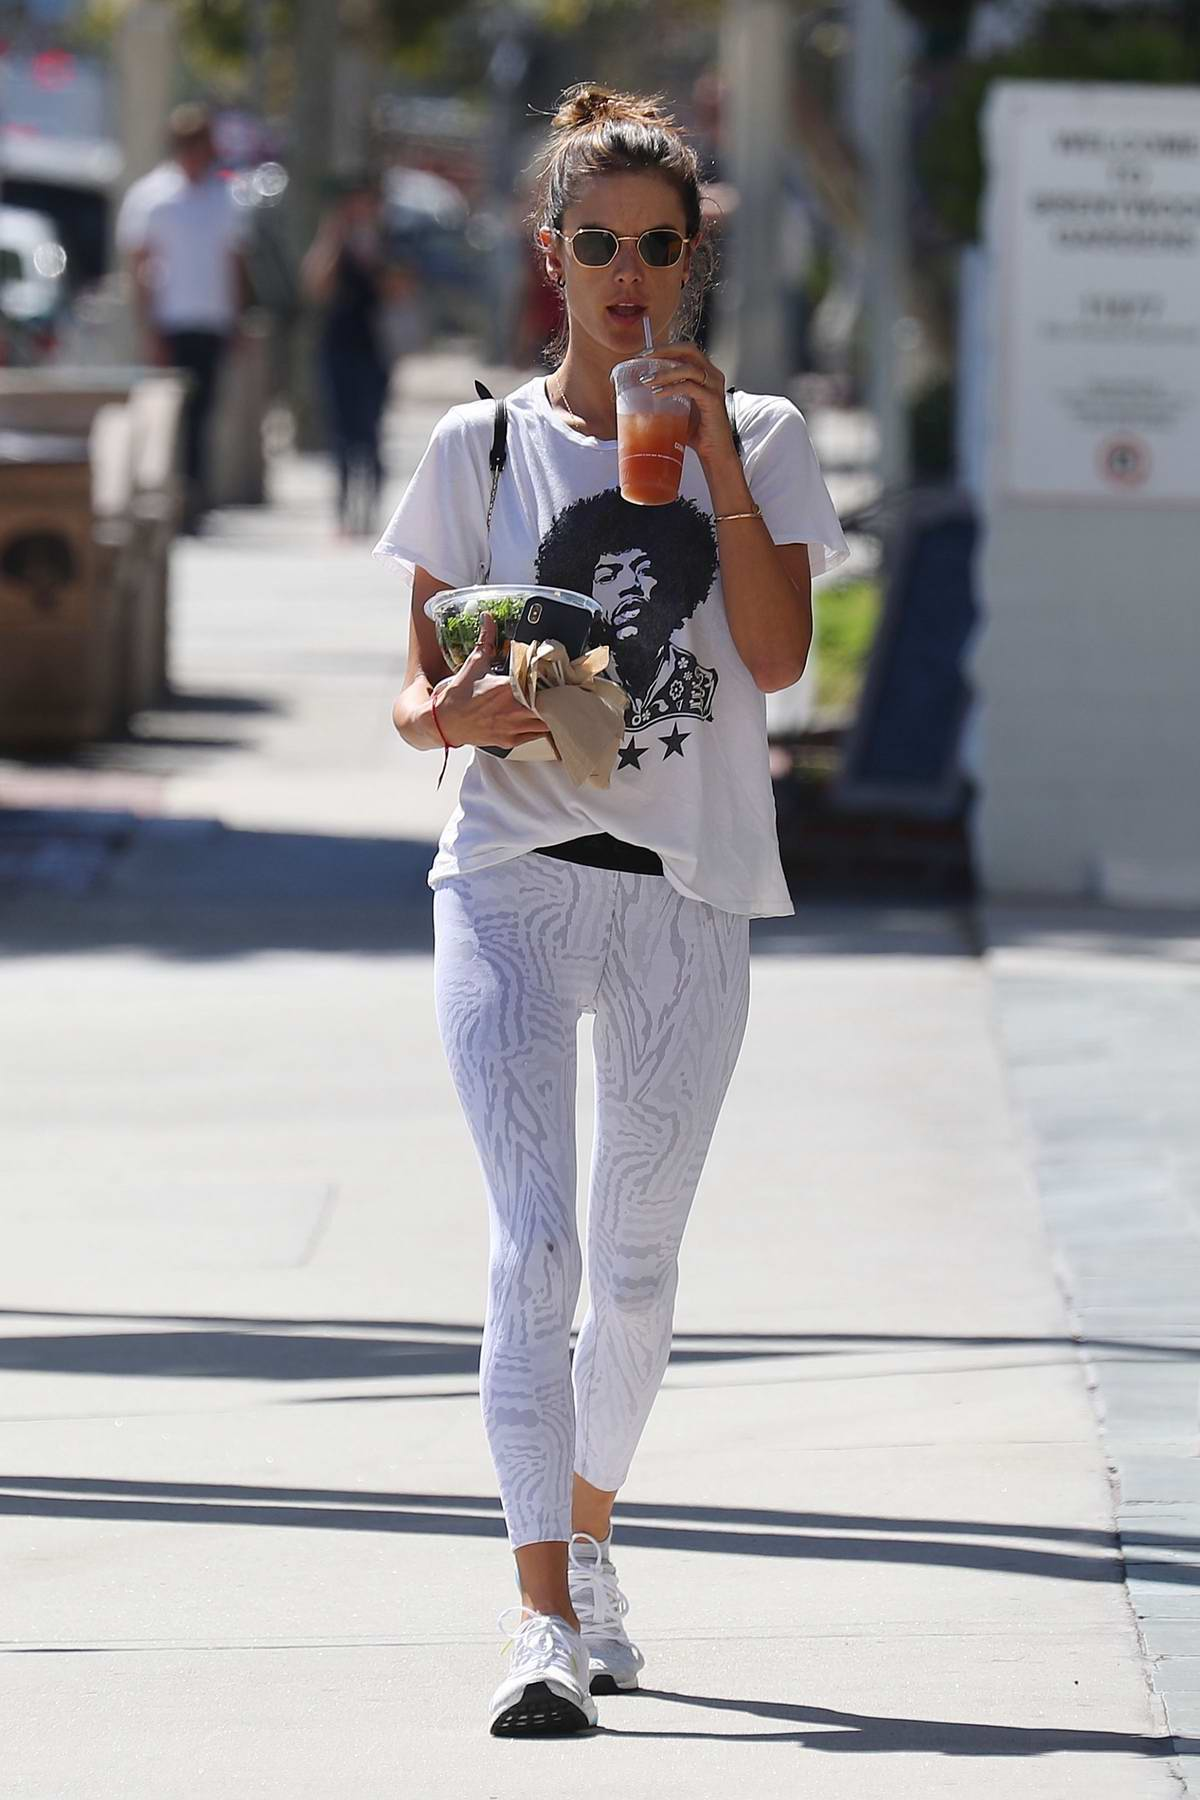 Alessandra Ambrosio visits a salon before stopping by at Sweetgreen for a salad and juice while out in Los Angeles